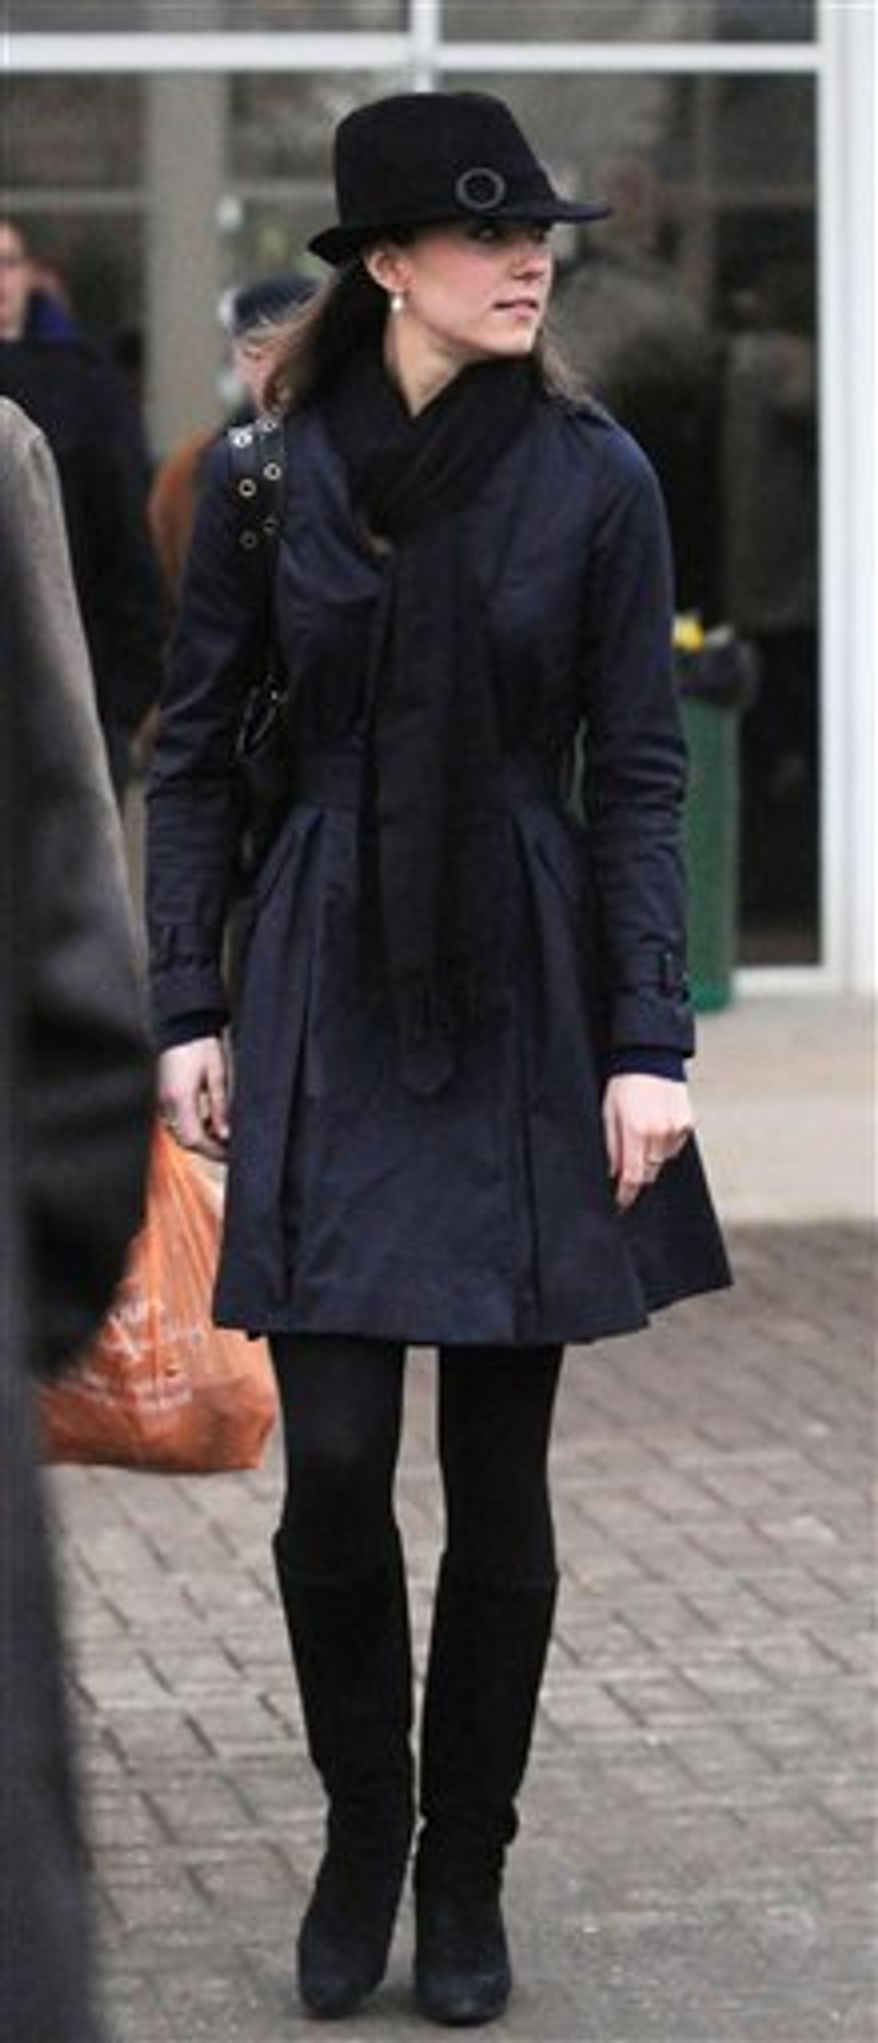 """FILE - In this March 14, 2008 file photo, Kate Middleton, the girlfriend of Britain's Prince William, leaves Cheltenham Racecourse in Cheltenham, England. Until she spoke out about her love for the 28-year-old prince and her admiration for his mother, the late Princess Diana, on the day their engagement was announced, Middleton had kept totally mum about her relationship and her thoughts about joining """"The Firm,"""" as the royal family is popularly known. (AP Photo/PA Wire, Barry Batchelor)  UNITED KINGDOM OUT"""